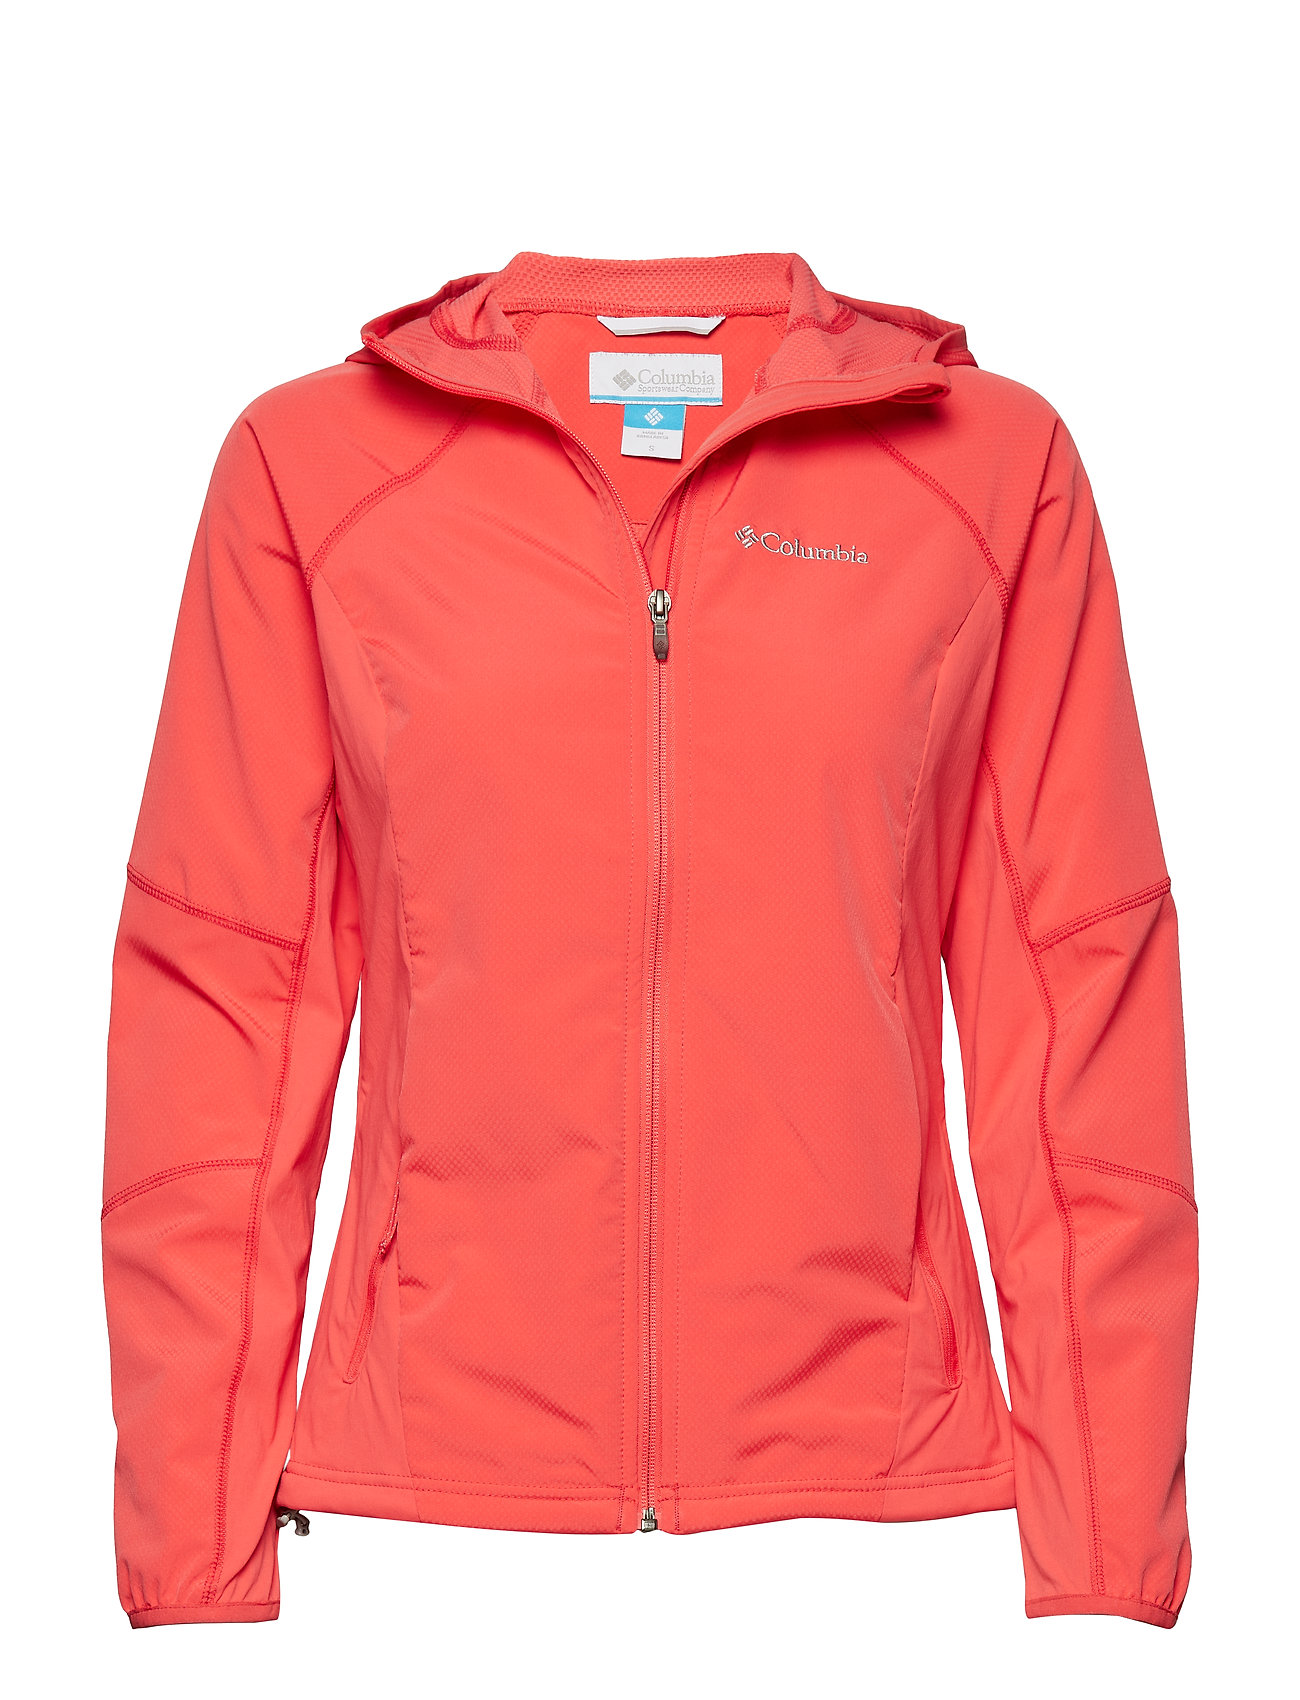 Columbia Sweet As™ Softshell Hoodie - RED CORAL